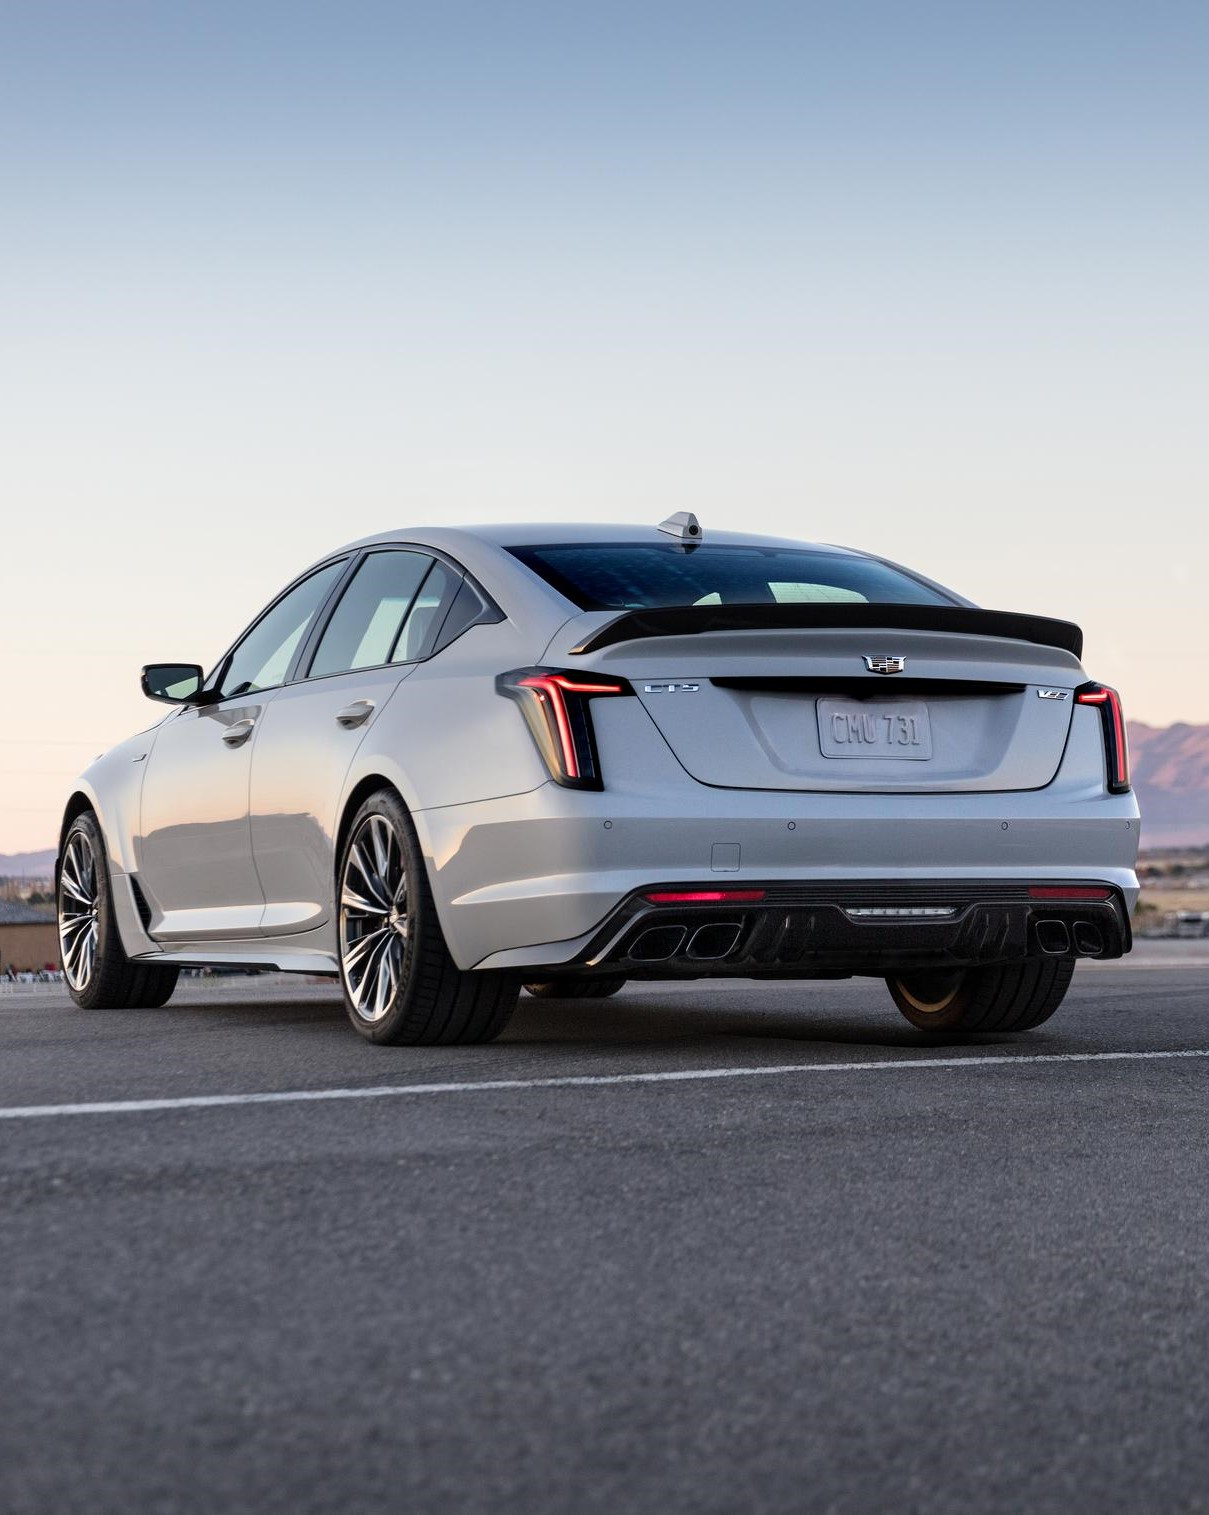 2022 Cadillac CT5-V Blackwing rear